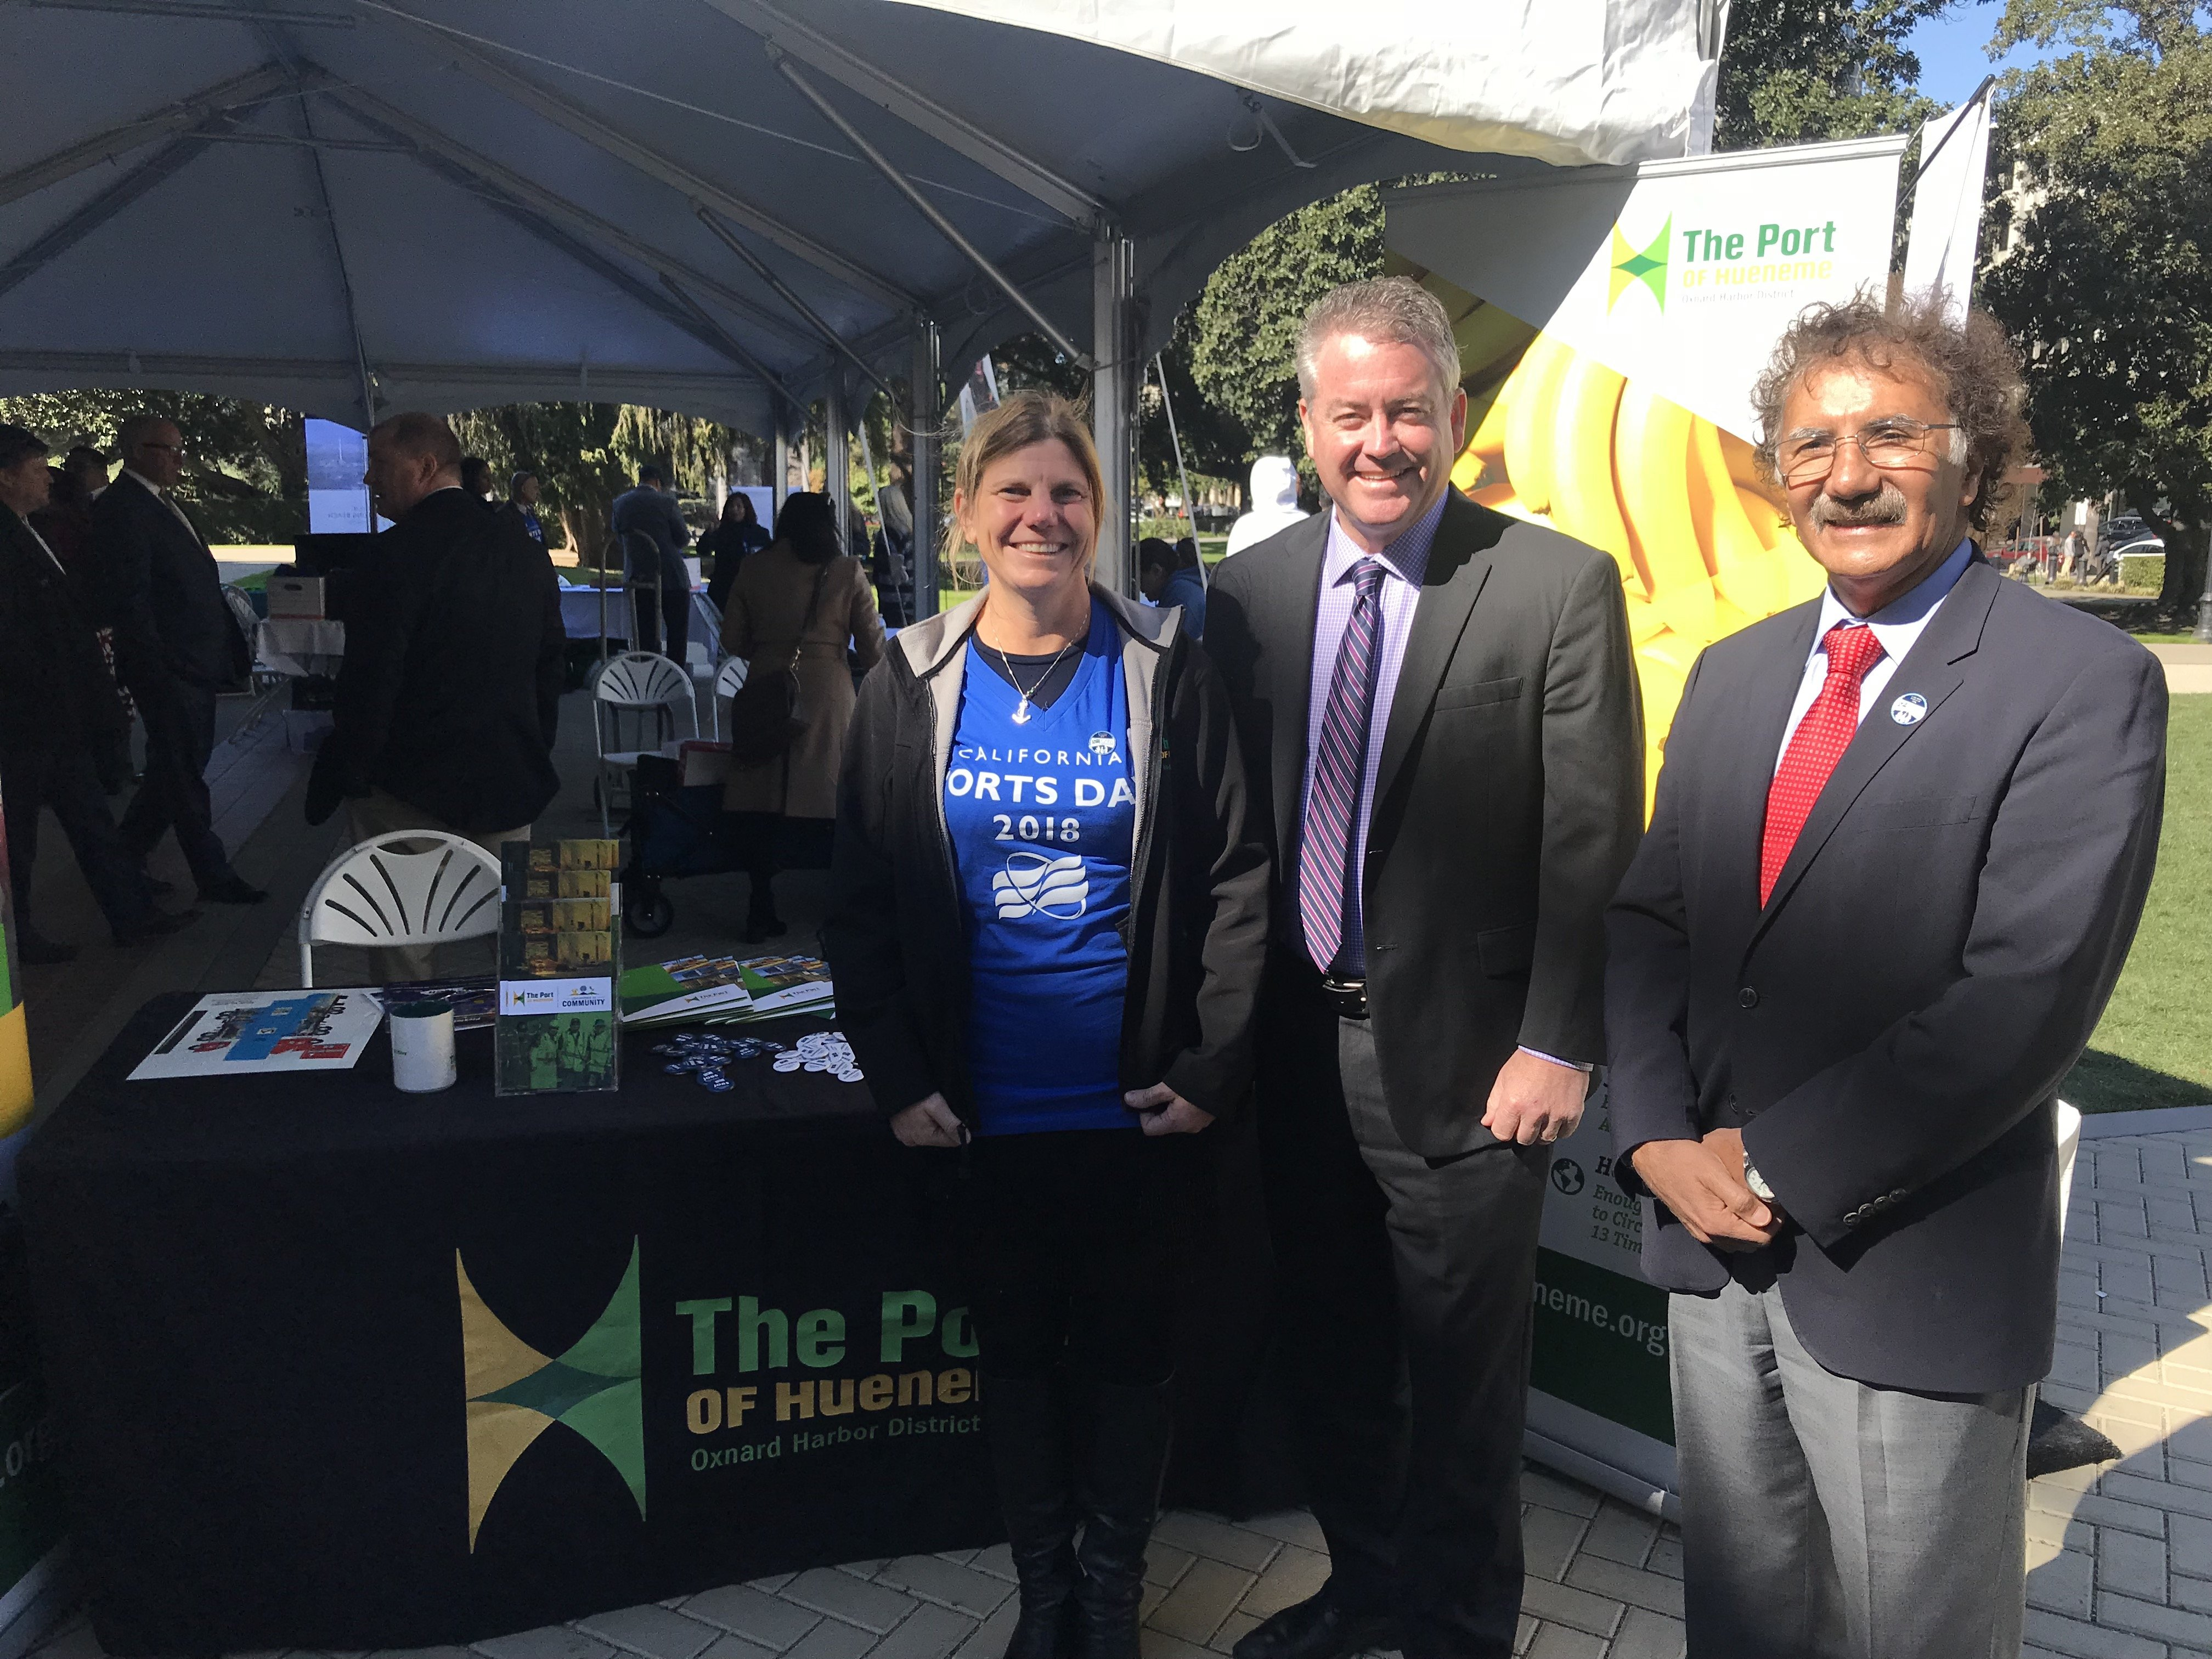 Kristin Decas, CAPA President and Port of Hueneme CEO & Port Director; Assemblymember Patrick O'Donnell (District 70); and Mario Cordero, Executive Director of Port of Long Beach